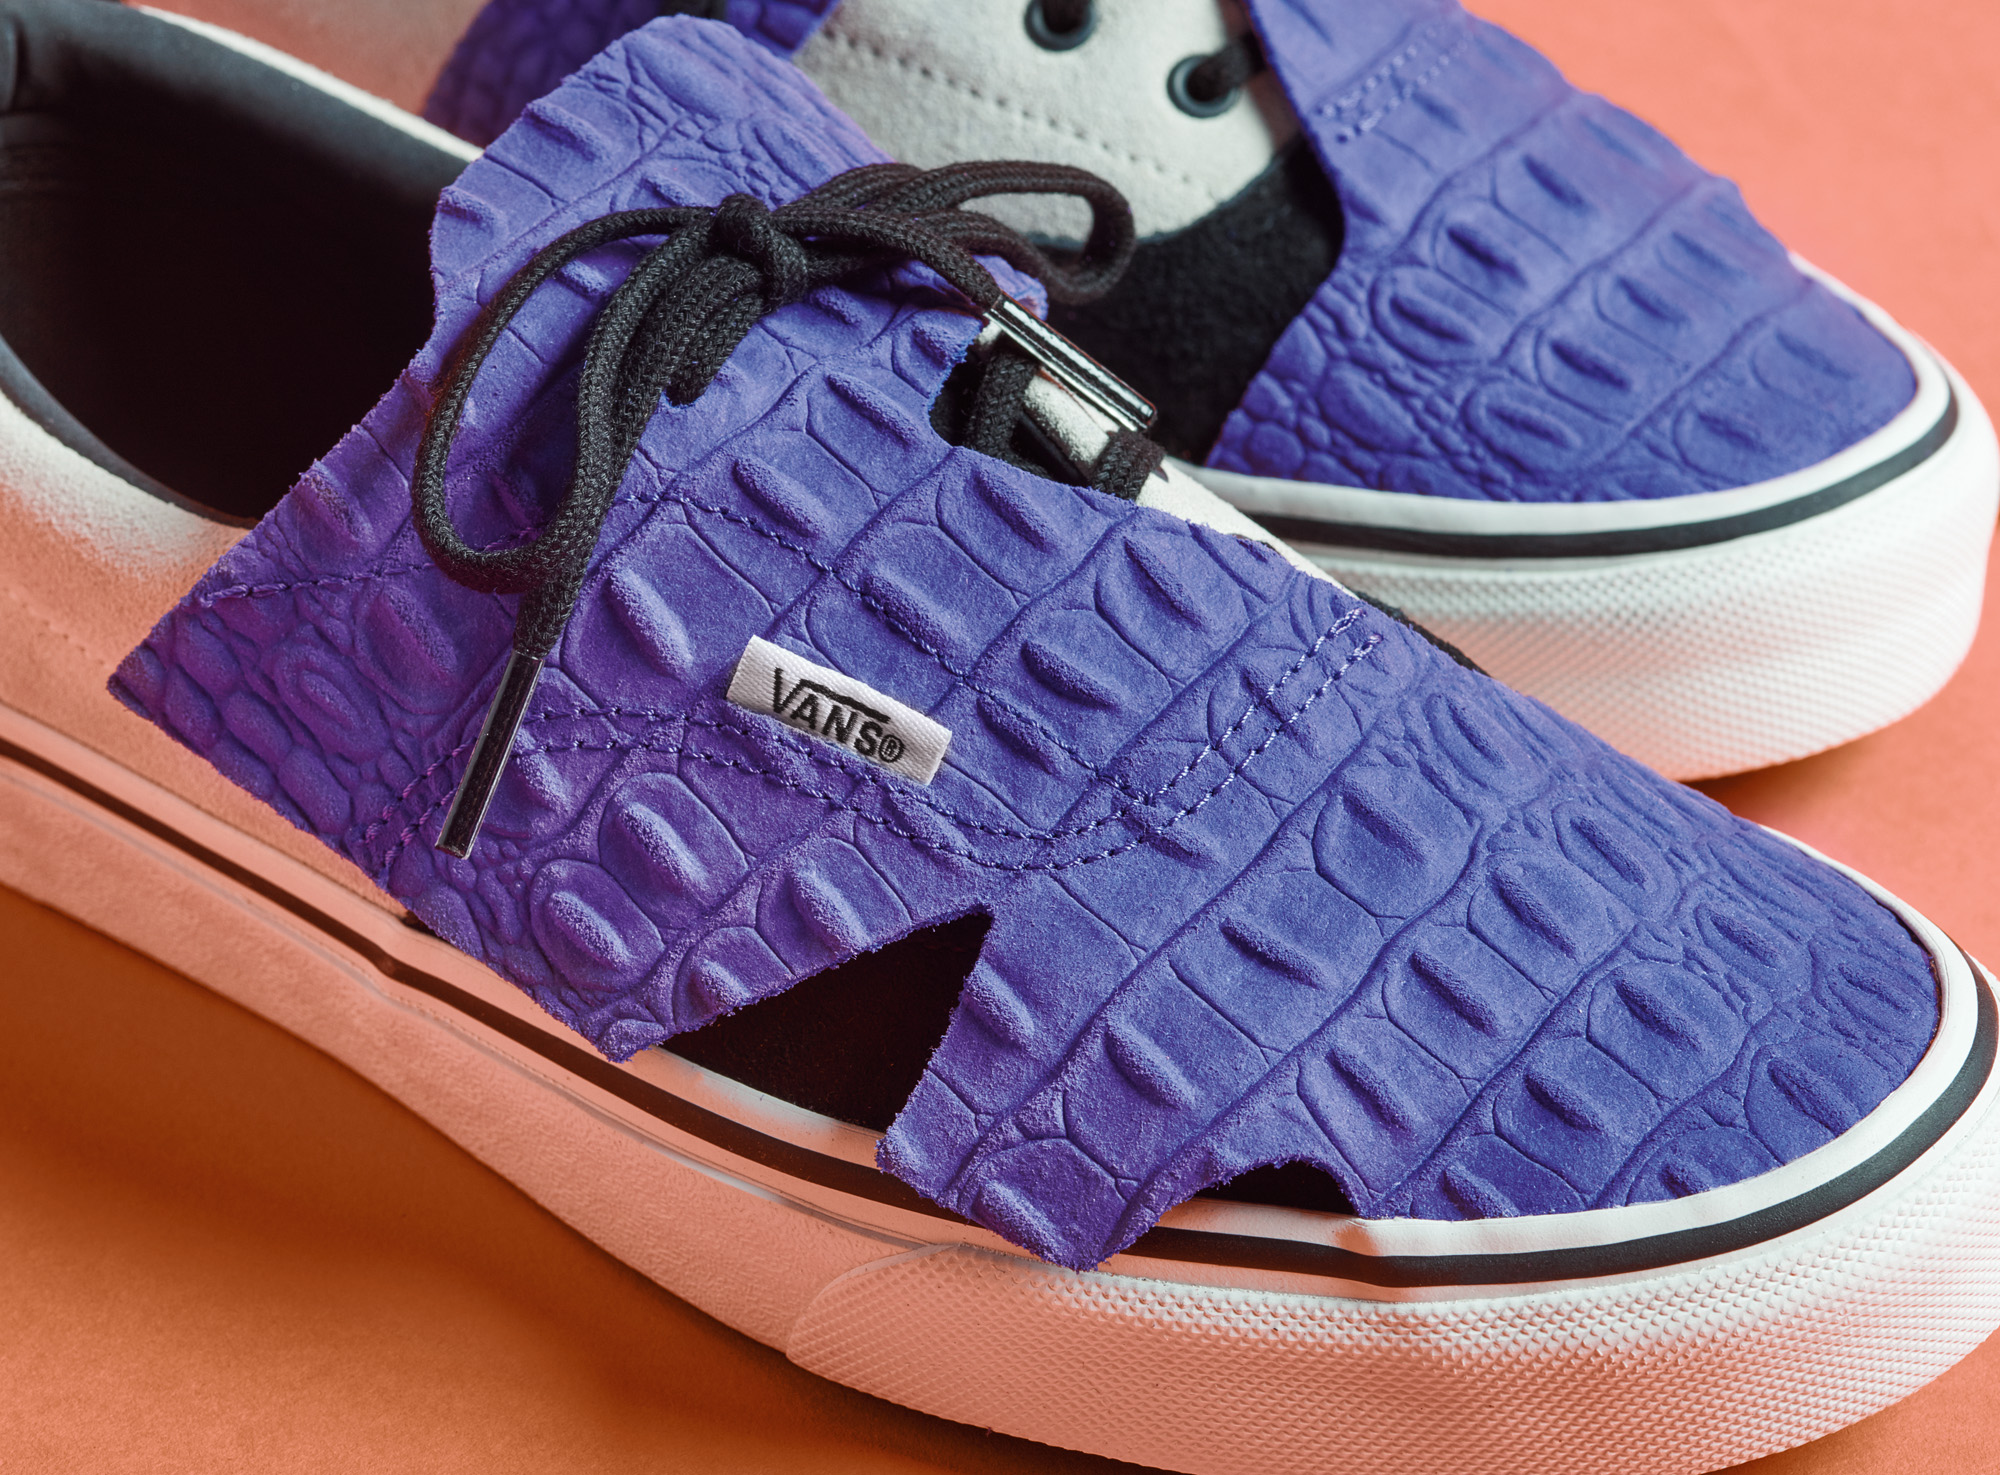 stores that sell van shoes